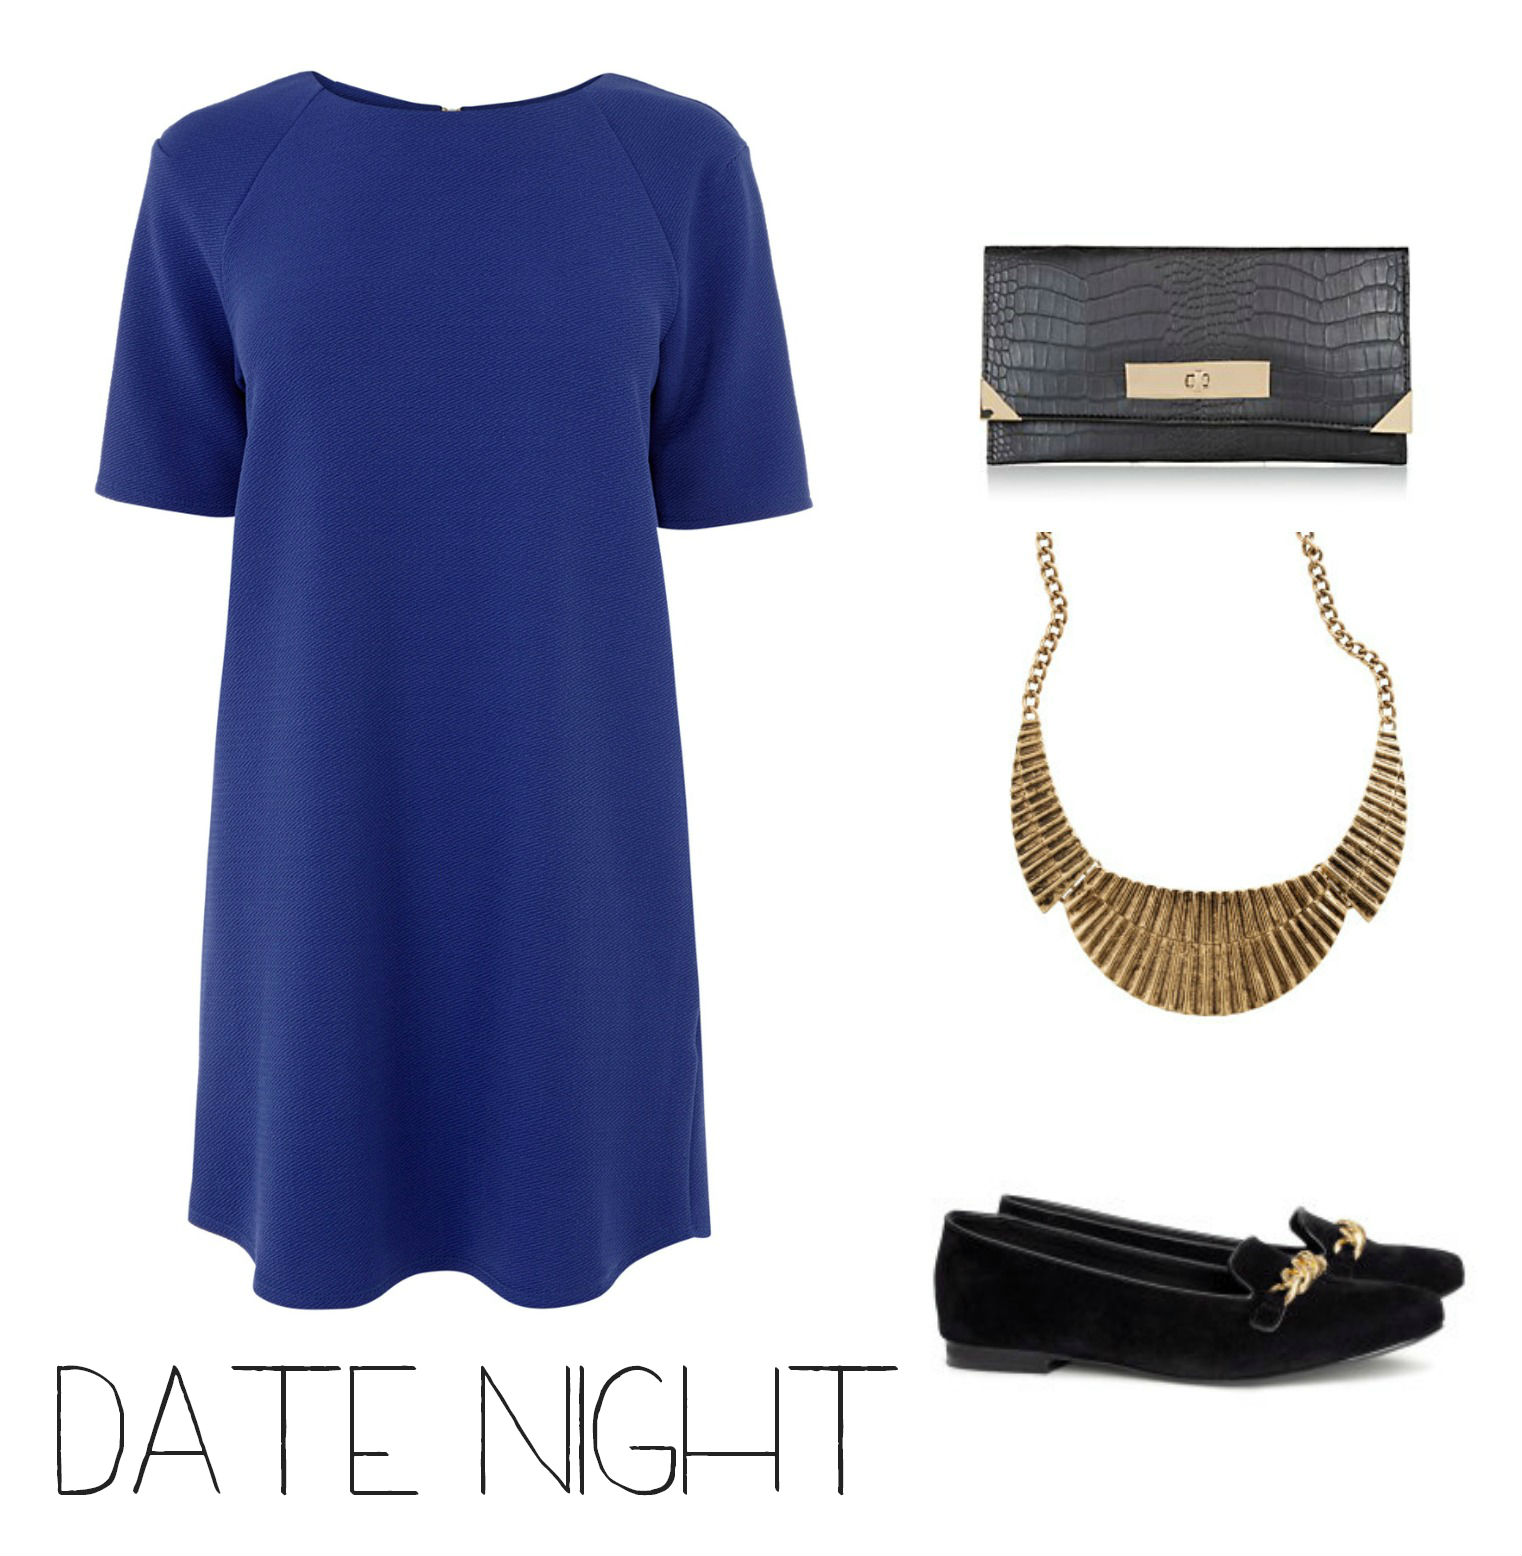 Date night outfit with shift dress